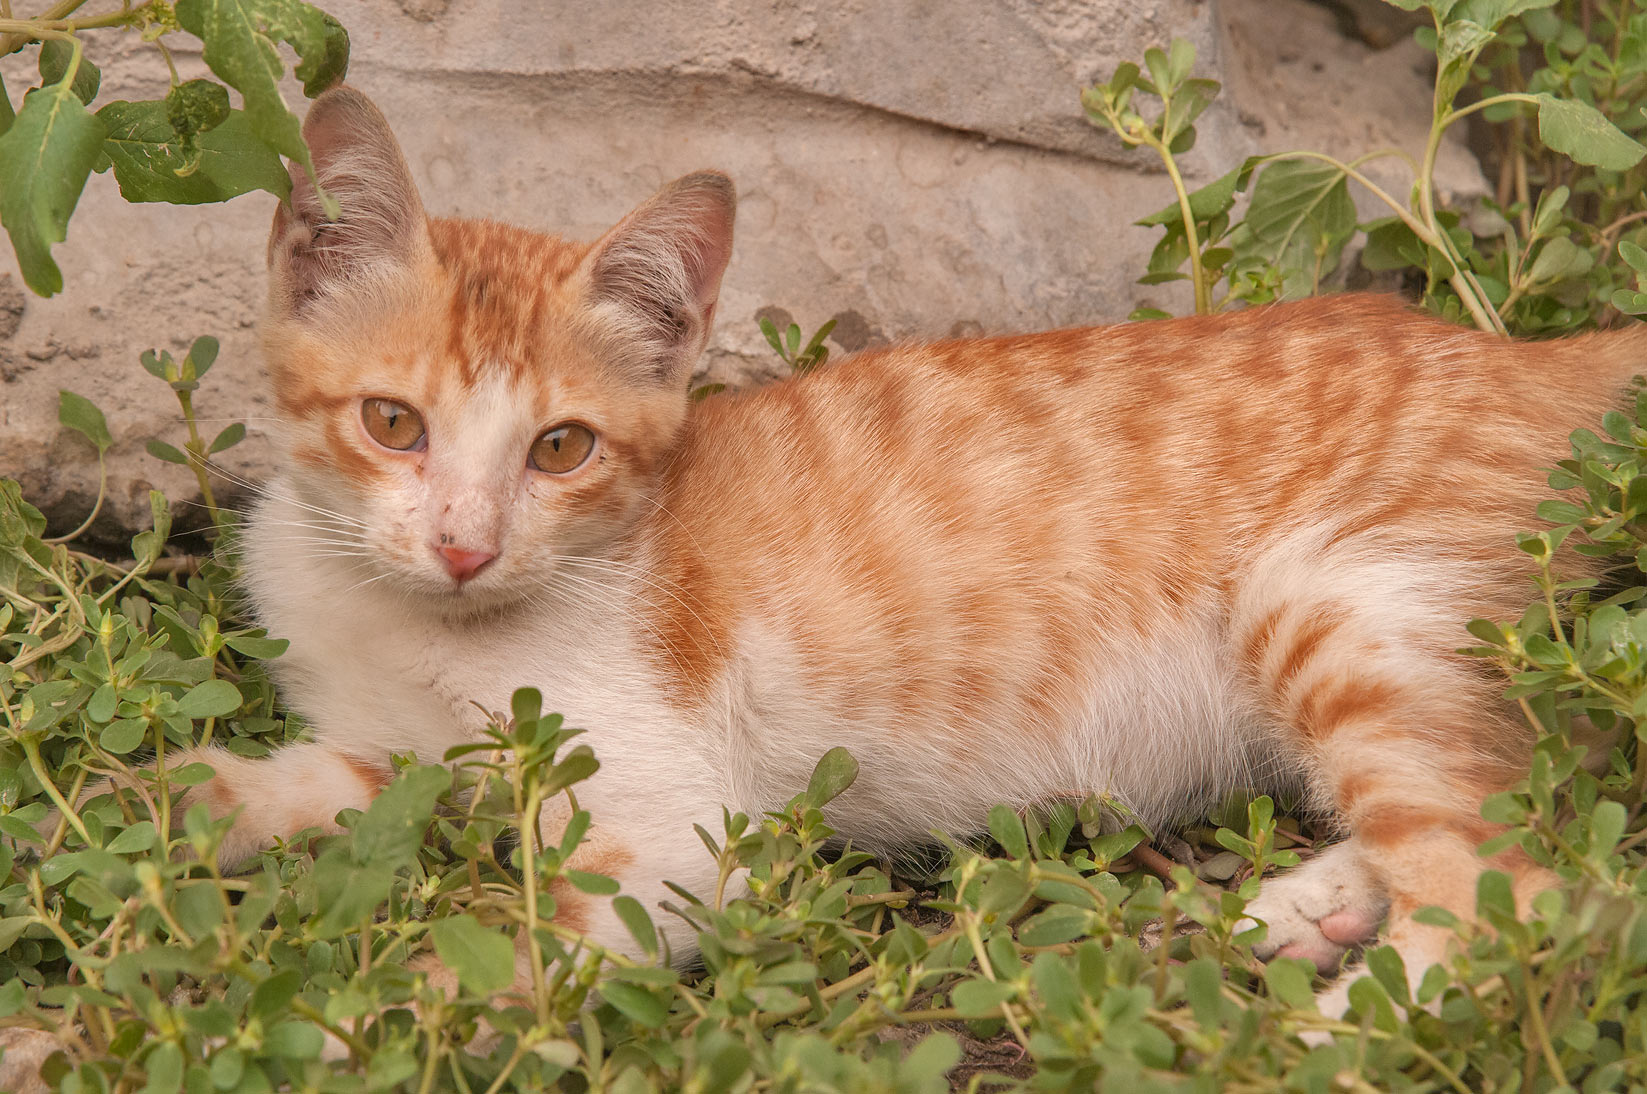 Brown kitten resting in purslane and amaranth...St., Musheirib area. Doha, Qatar